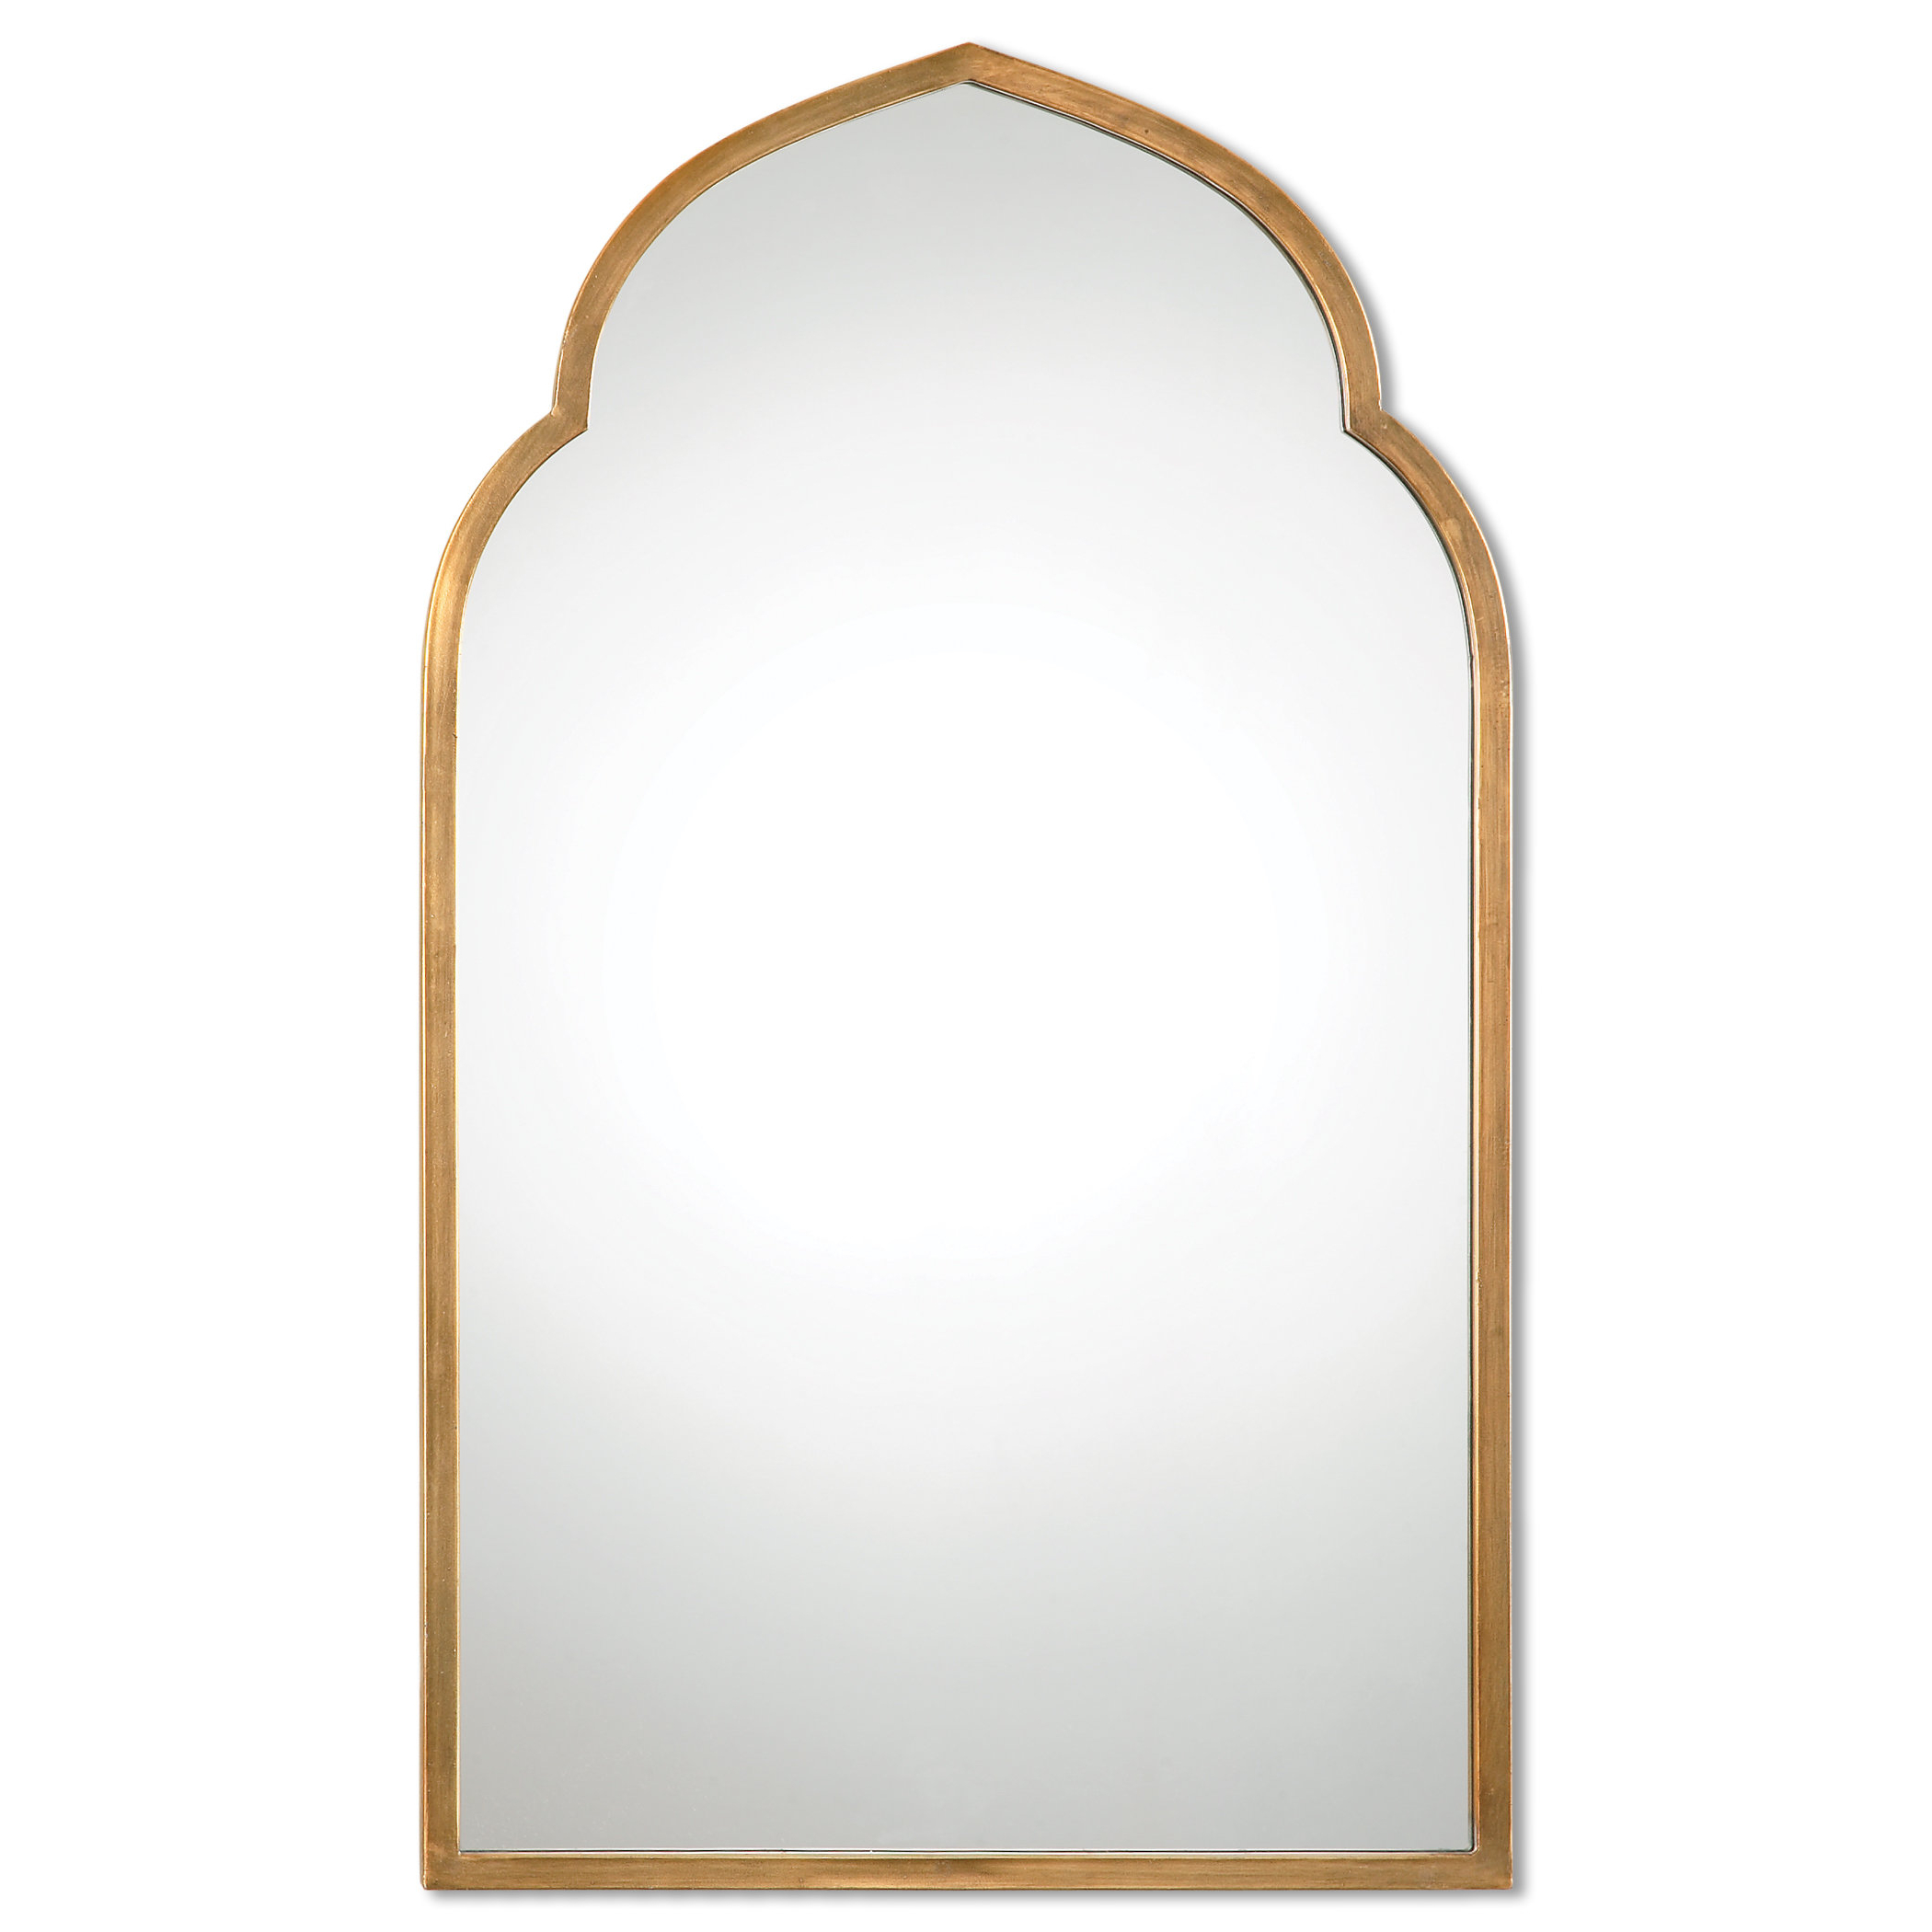 Gold Arch Wall Mirror Within Widely Used Arch Top Vertical Wall Mirrors (Gallery 4 of 20)